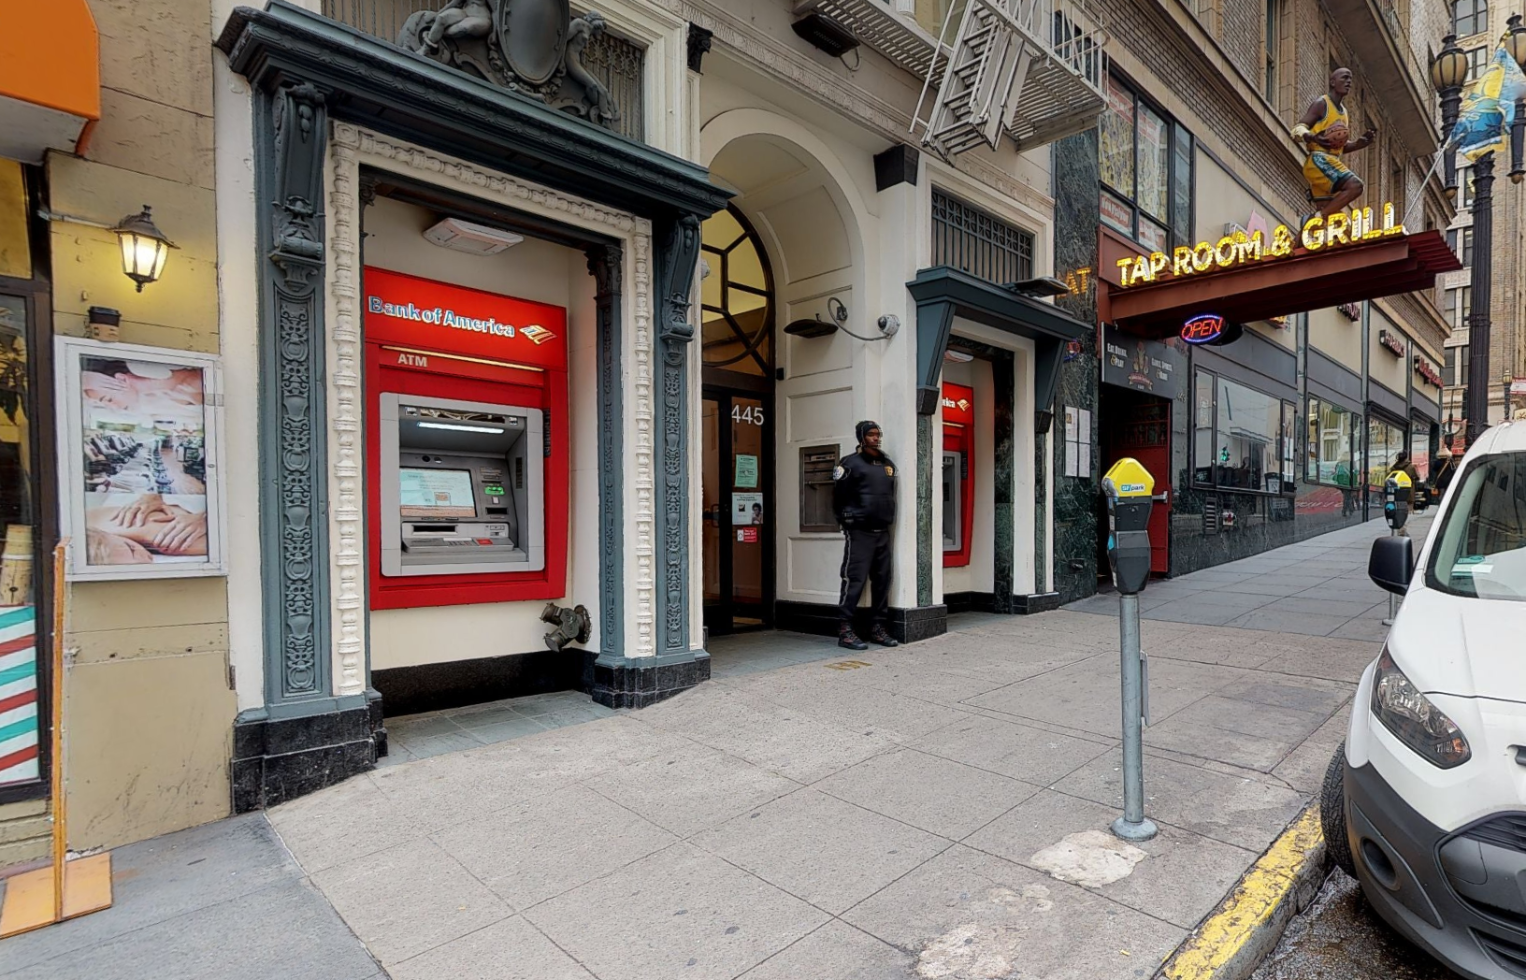 Bank of America financial center with walk-up ATM | 445 Powell St, San Francisco, CA 94102